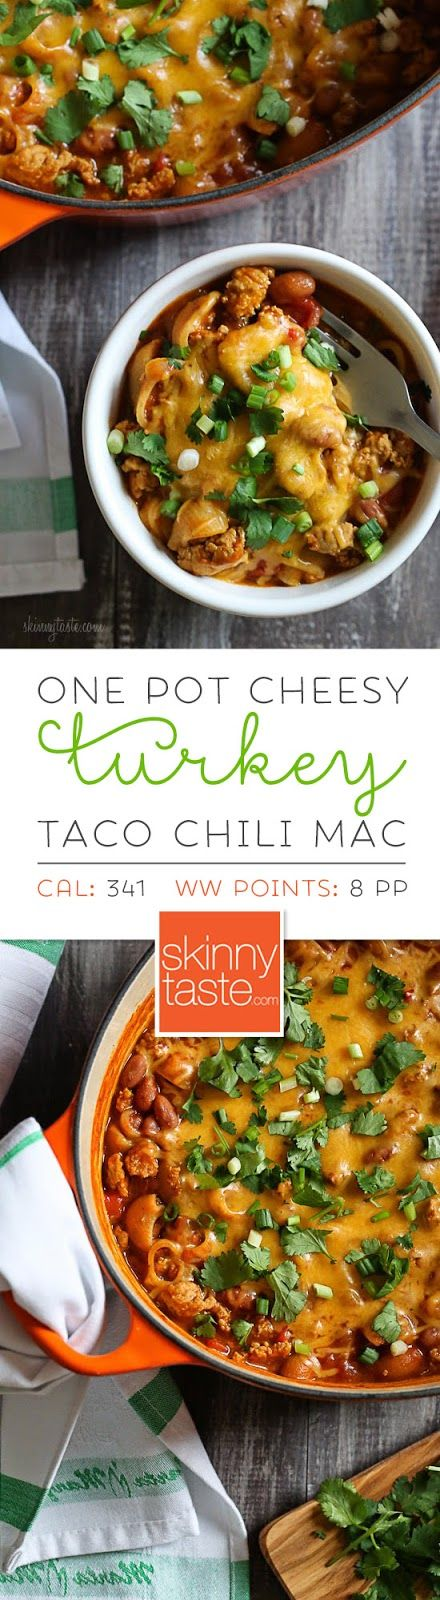 One Pot Cheesy Turkey Taco Chili Mac-- gluten free pasta